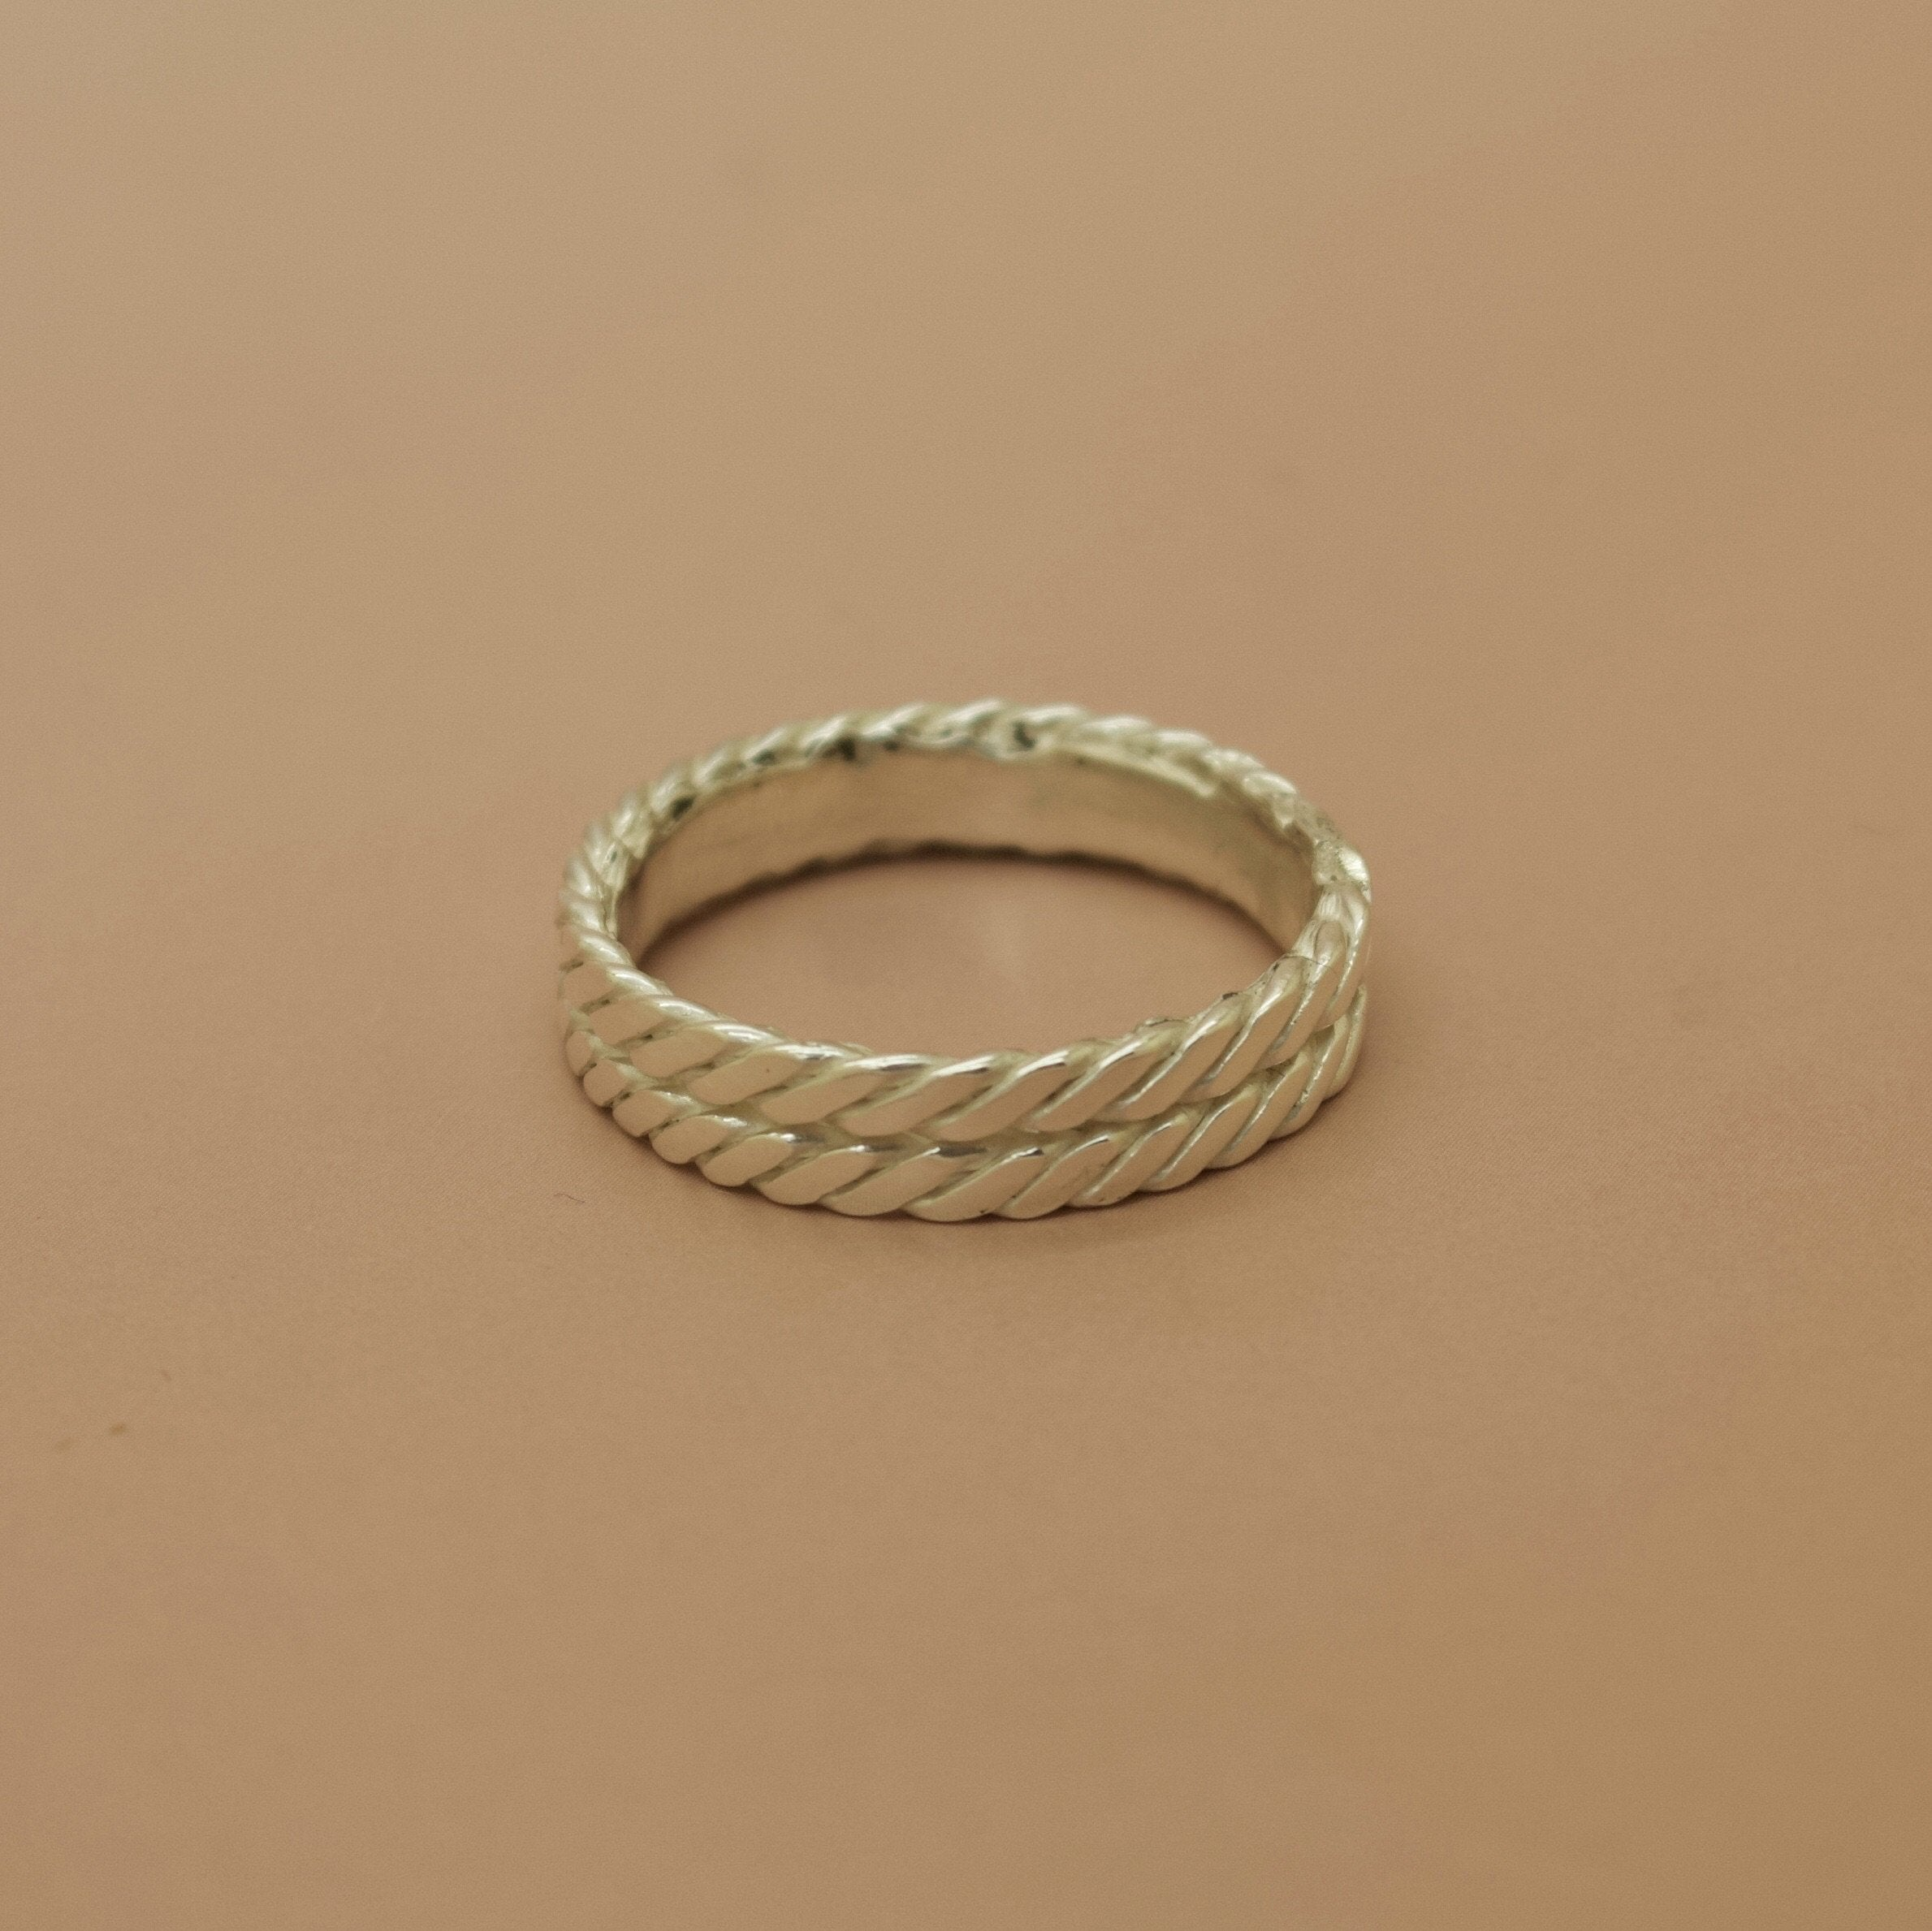 Ready To Ship ✦ Bound II Ring - Silver UK Q / US 8 - Ring The Serpents Club